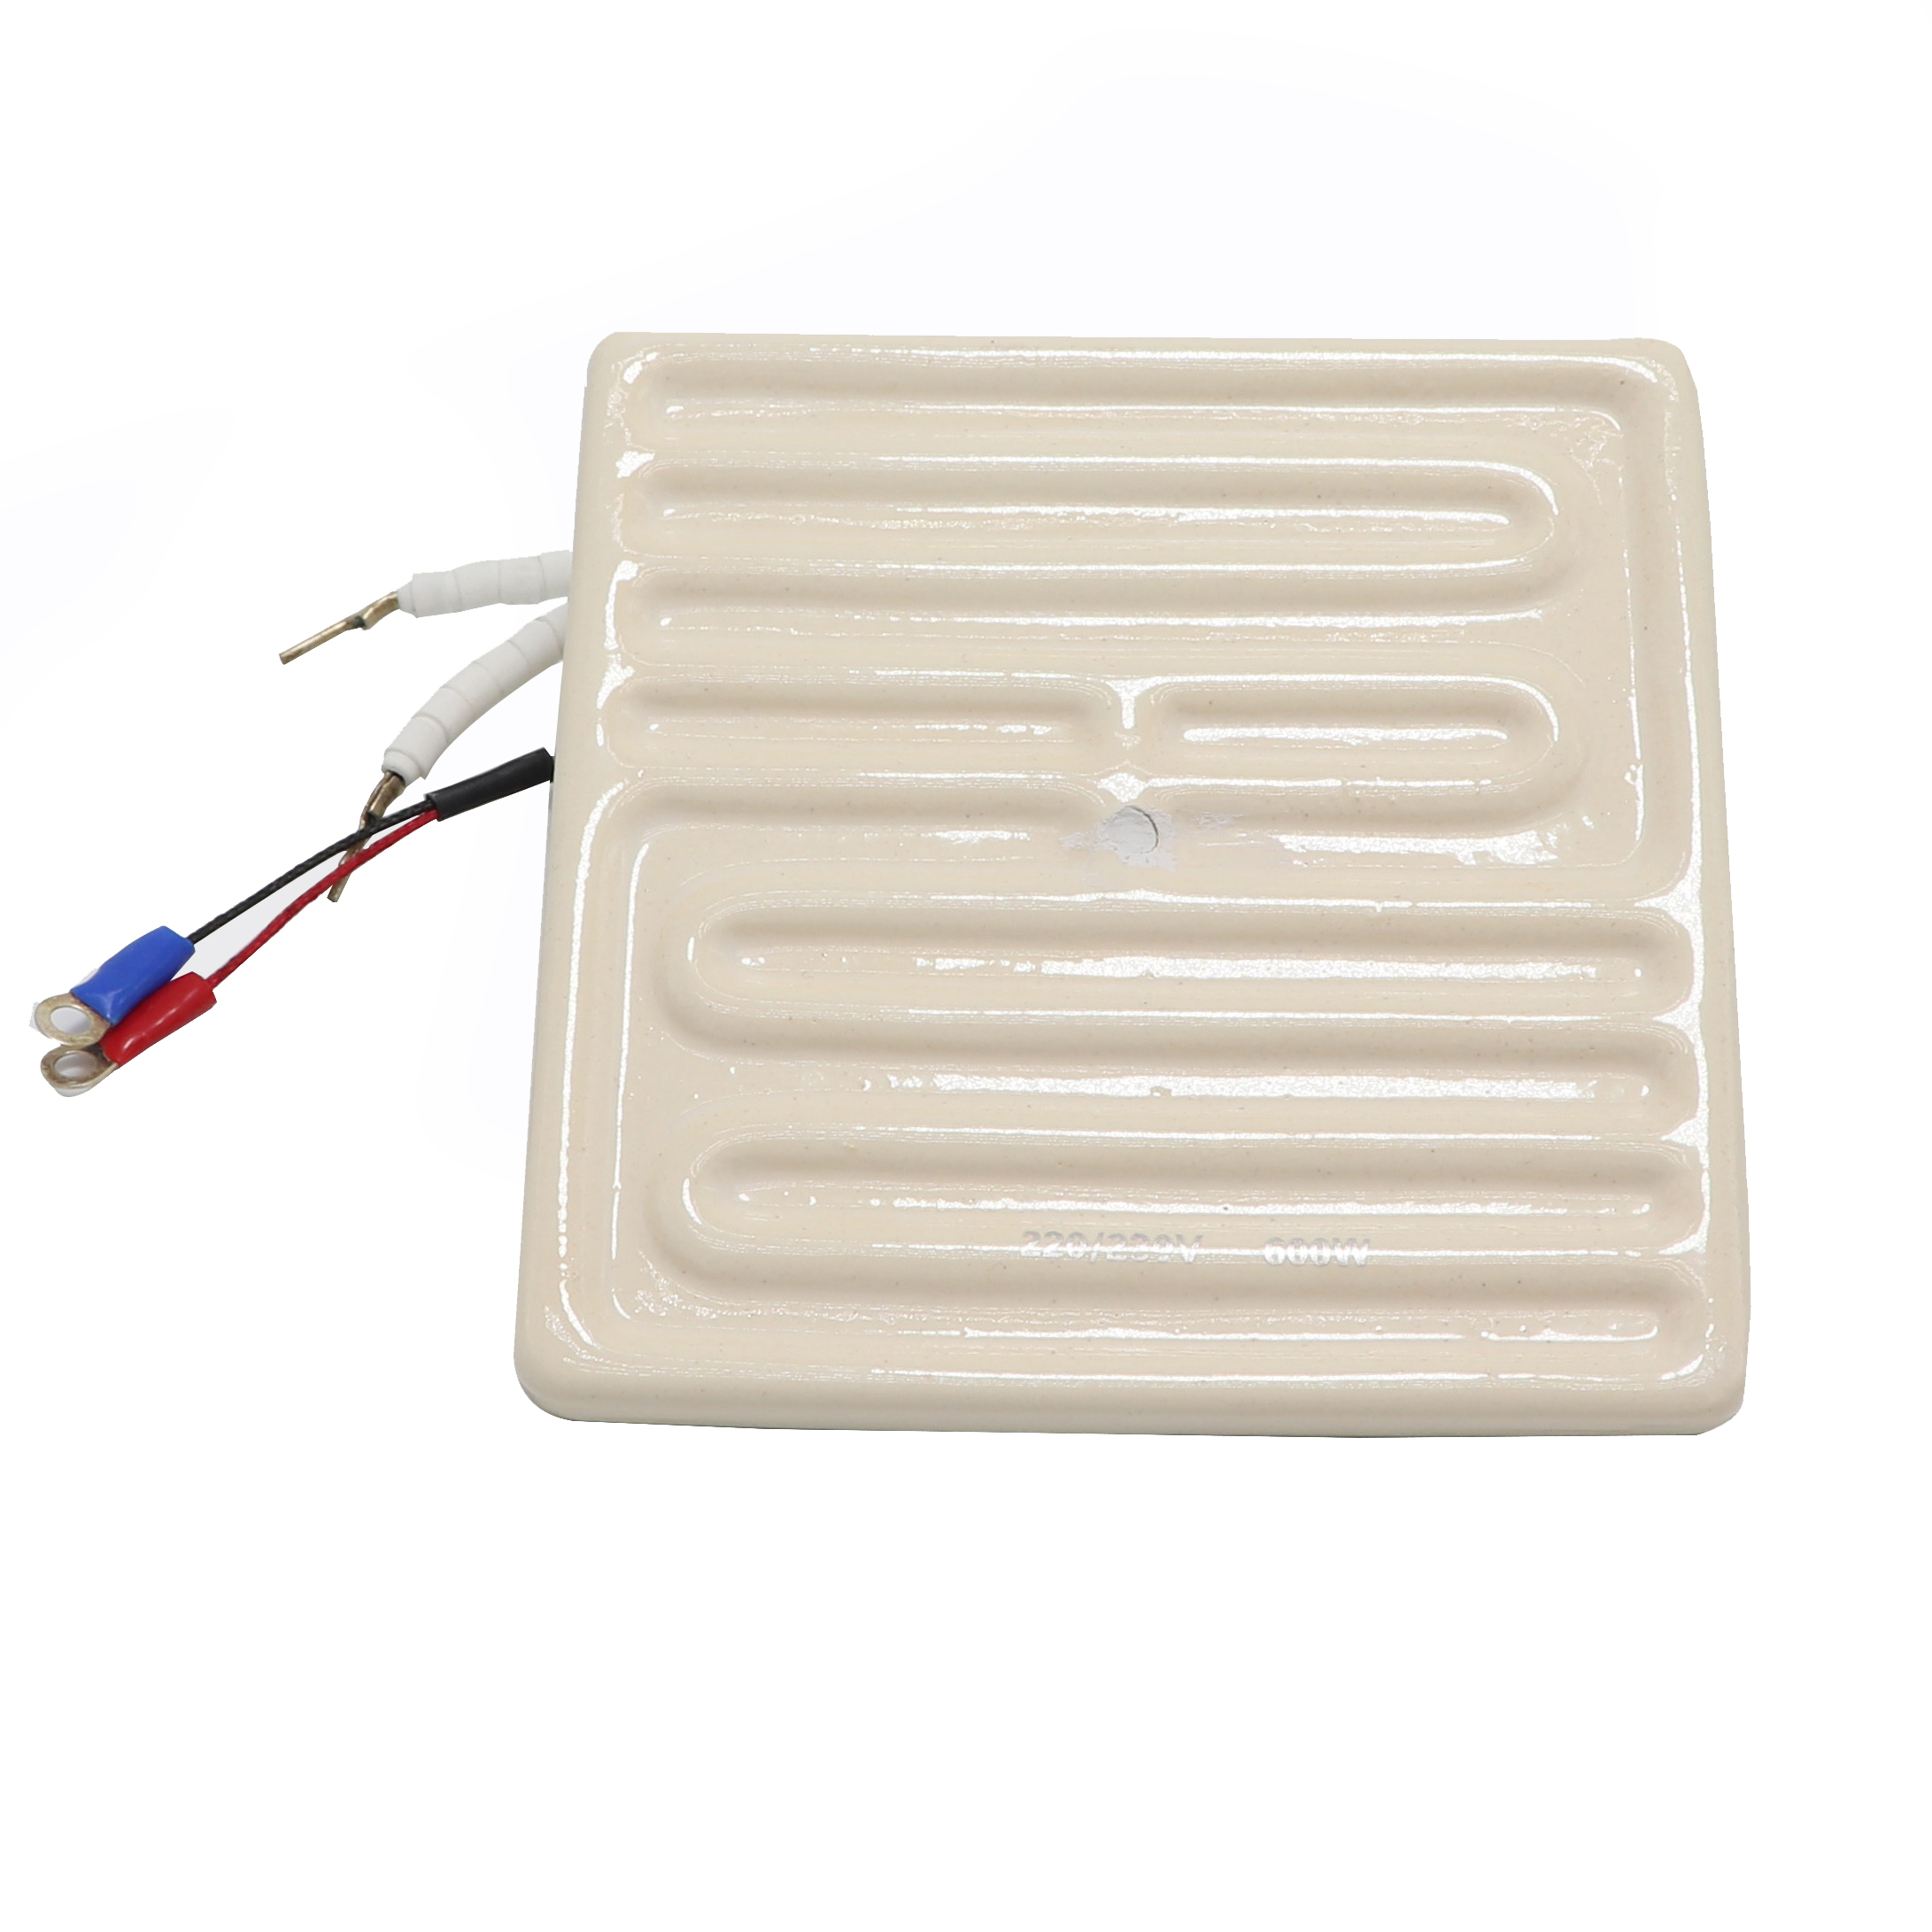 GORDAK 853 863 Heating Plate Far Infrared Ceramic Heating Brick BGA Rework Station Dedicated 120 * 120MM 600W 220v